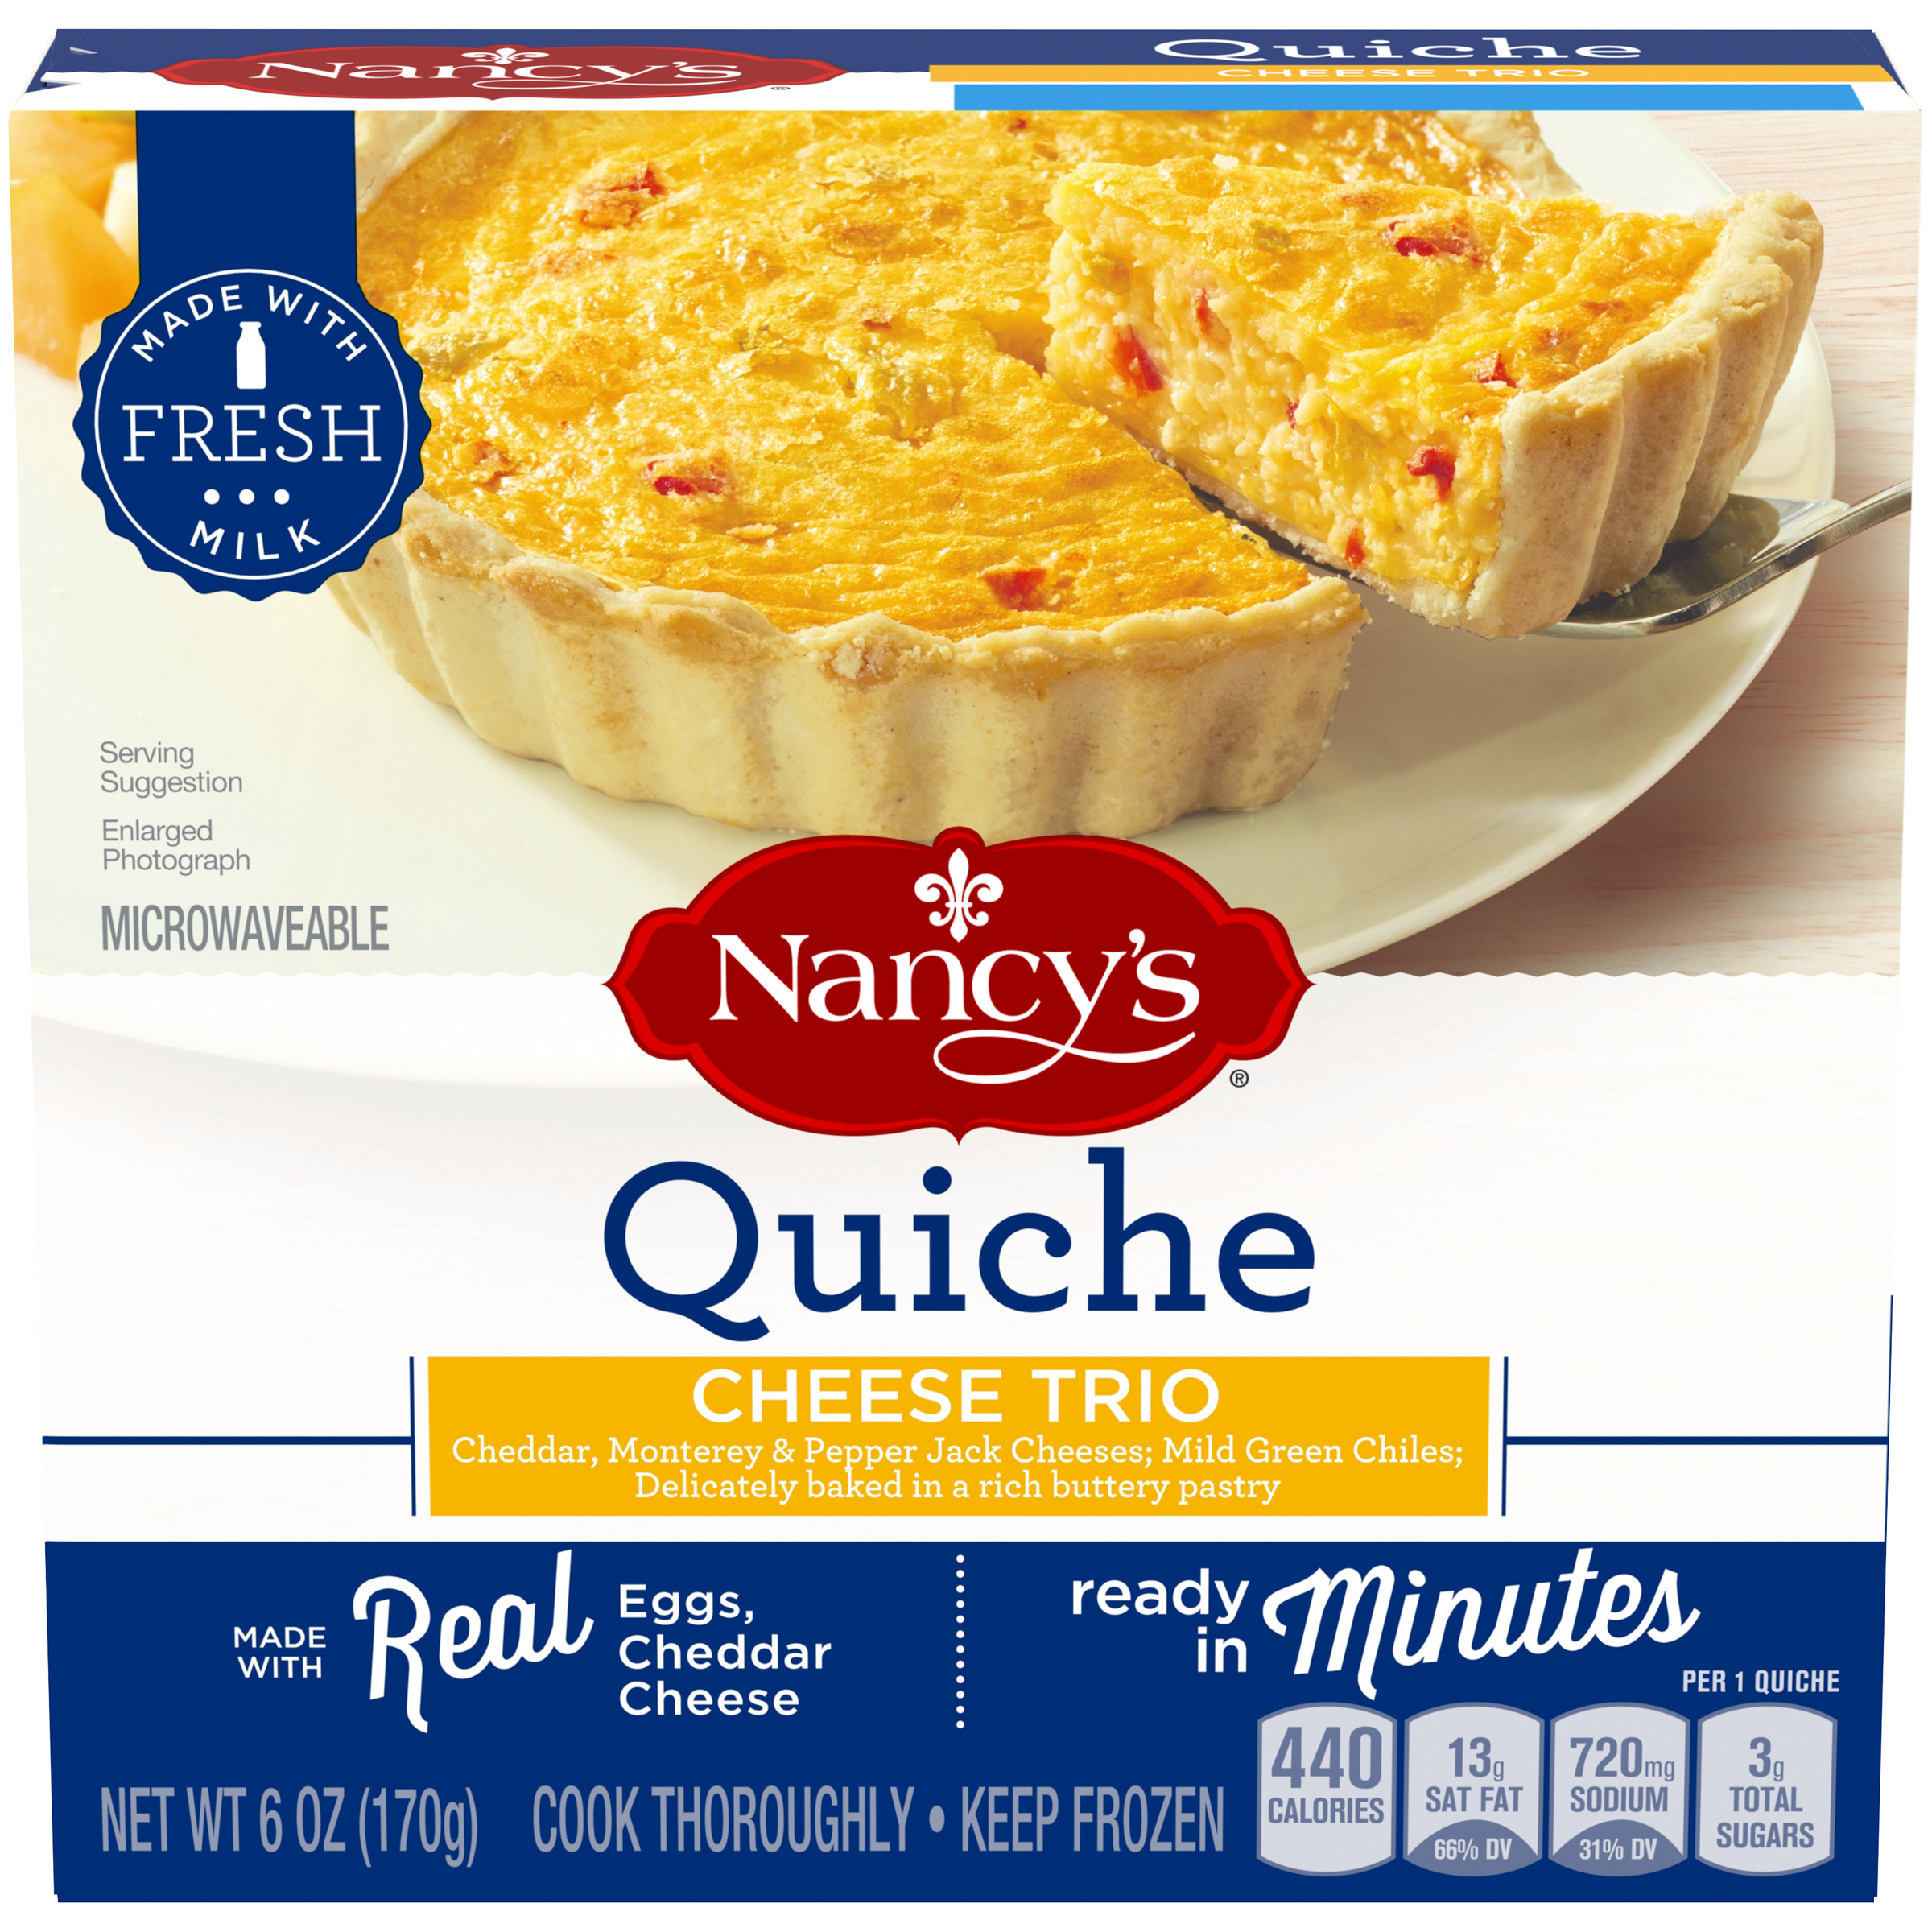 Nancy's(r) Quiche Cheese Trio 6 oz. Box